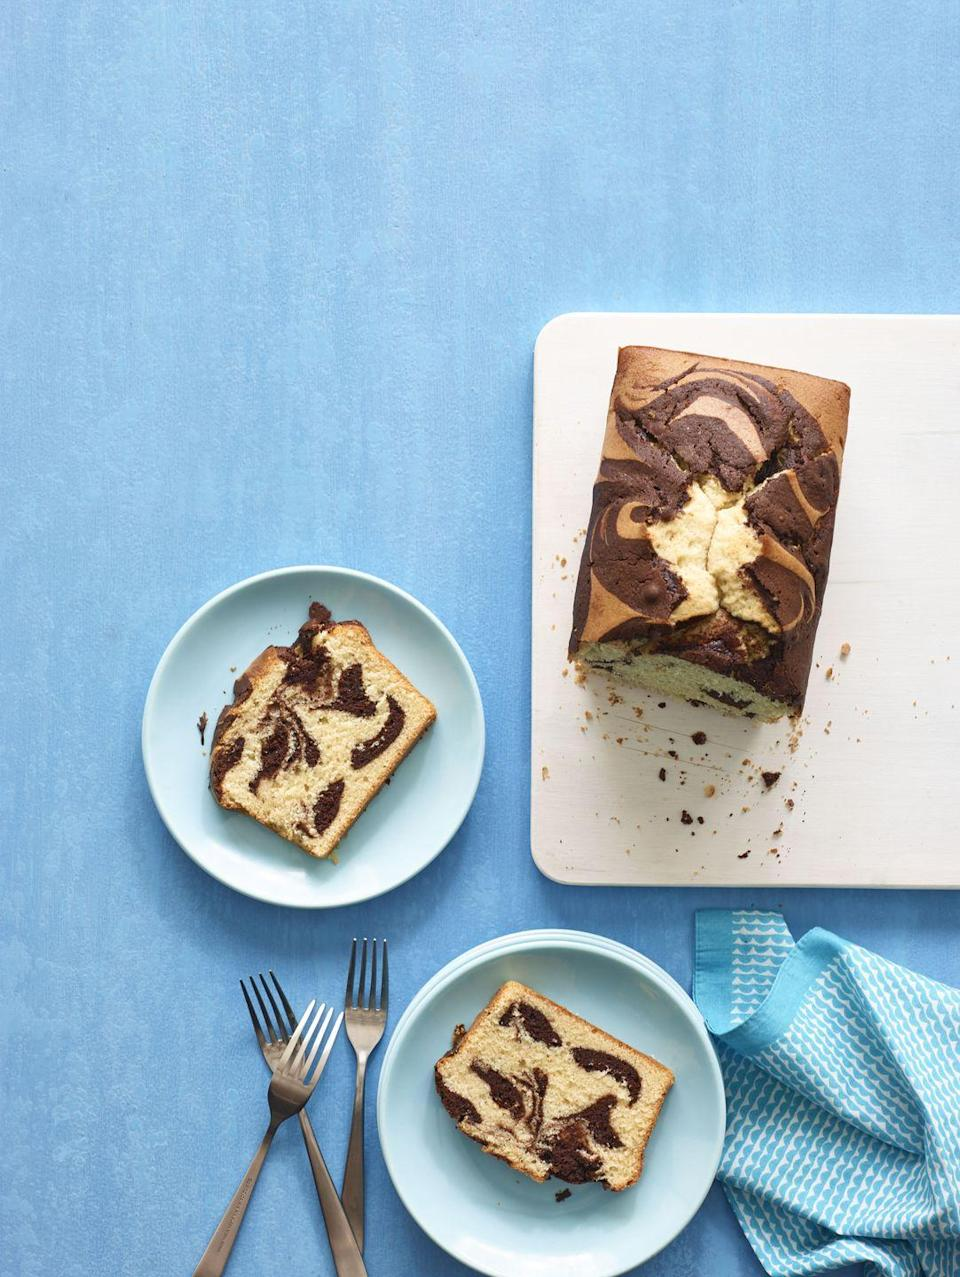 """<p>A surprising ingredient heats up this classic cake recipe: Hot cocoa mix stirred right into the batter makes deliciously chocolatey swirls!</p><p><em><a href=""""https://www.goodhousekeeping.com/food-recipes/a14867/vanilla-chocolate-pound-cake-recipe-wdy0914/"""" rel=""""nofollow noopener"""" target=""""_blank"""" data-ylk=""""slk:Get the recipe for Vanilla-Chocolate Pound Cake »"""" class=""""link rapid-noclick-resp"""">Get the recipe for Vanilla-Chocolate Pound Cake »</a></em></p>"""